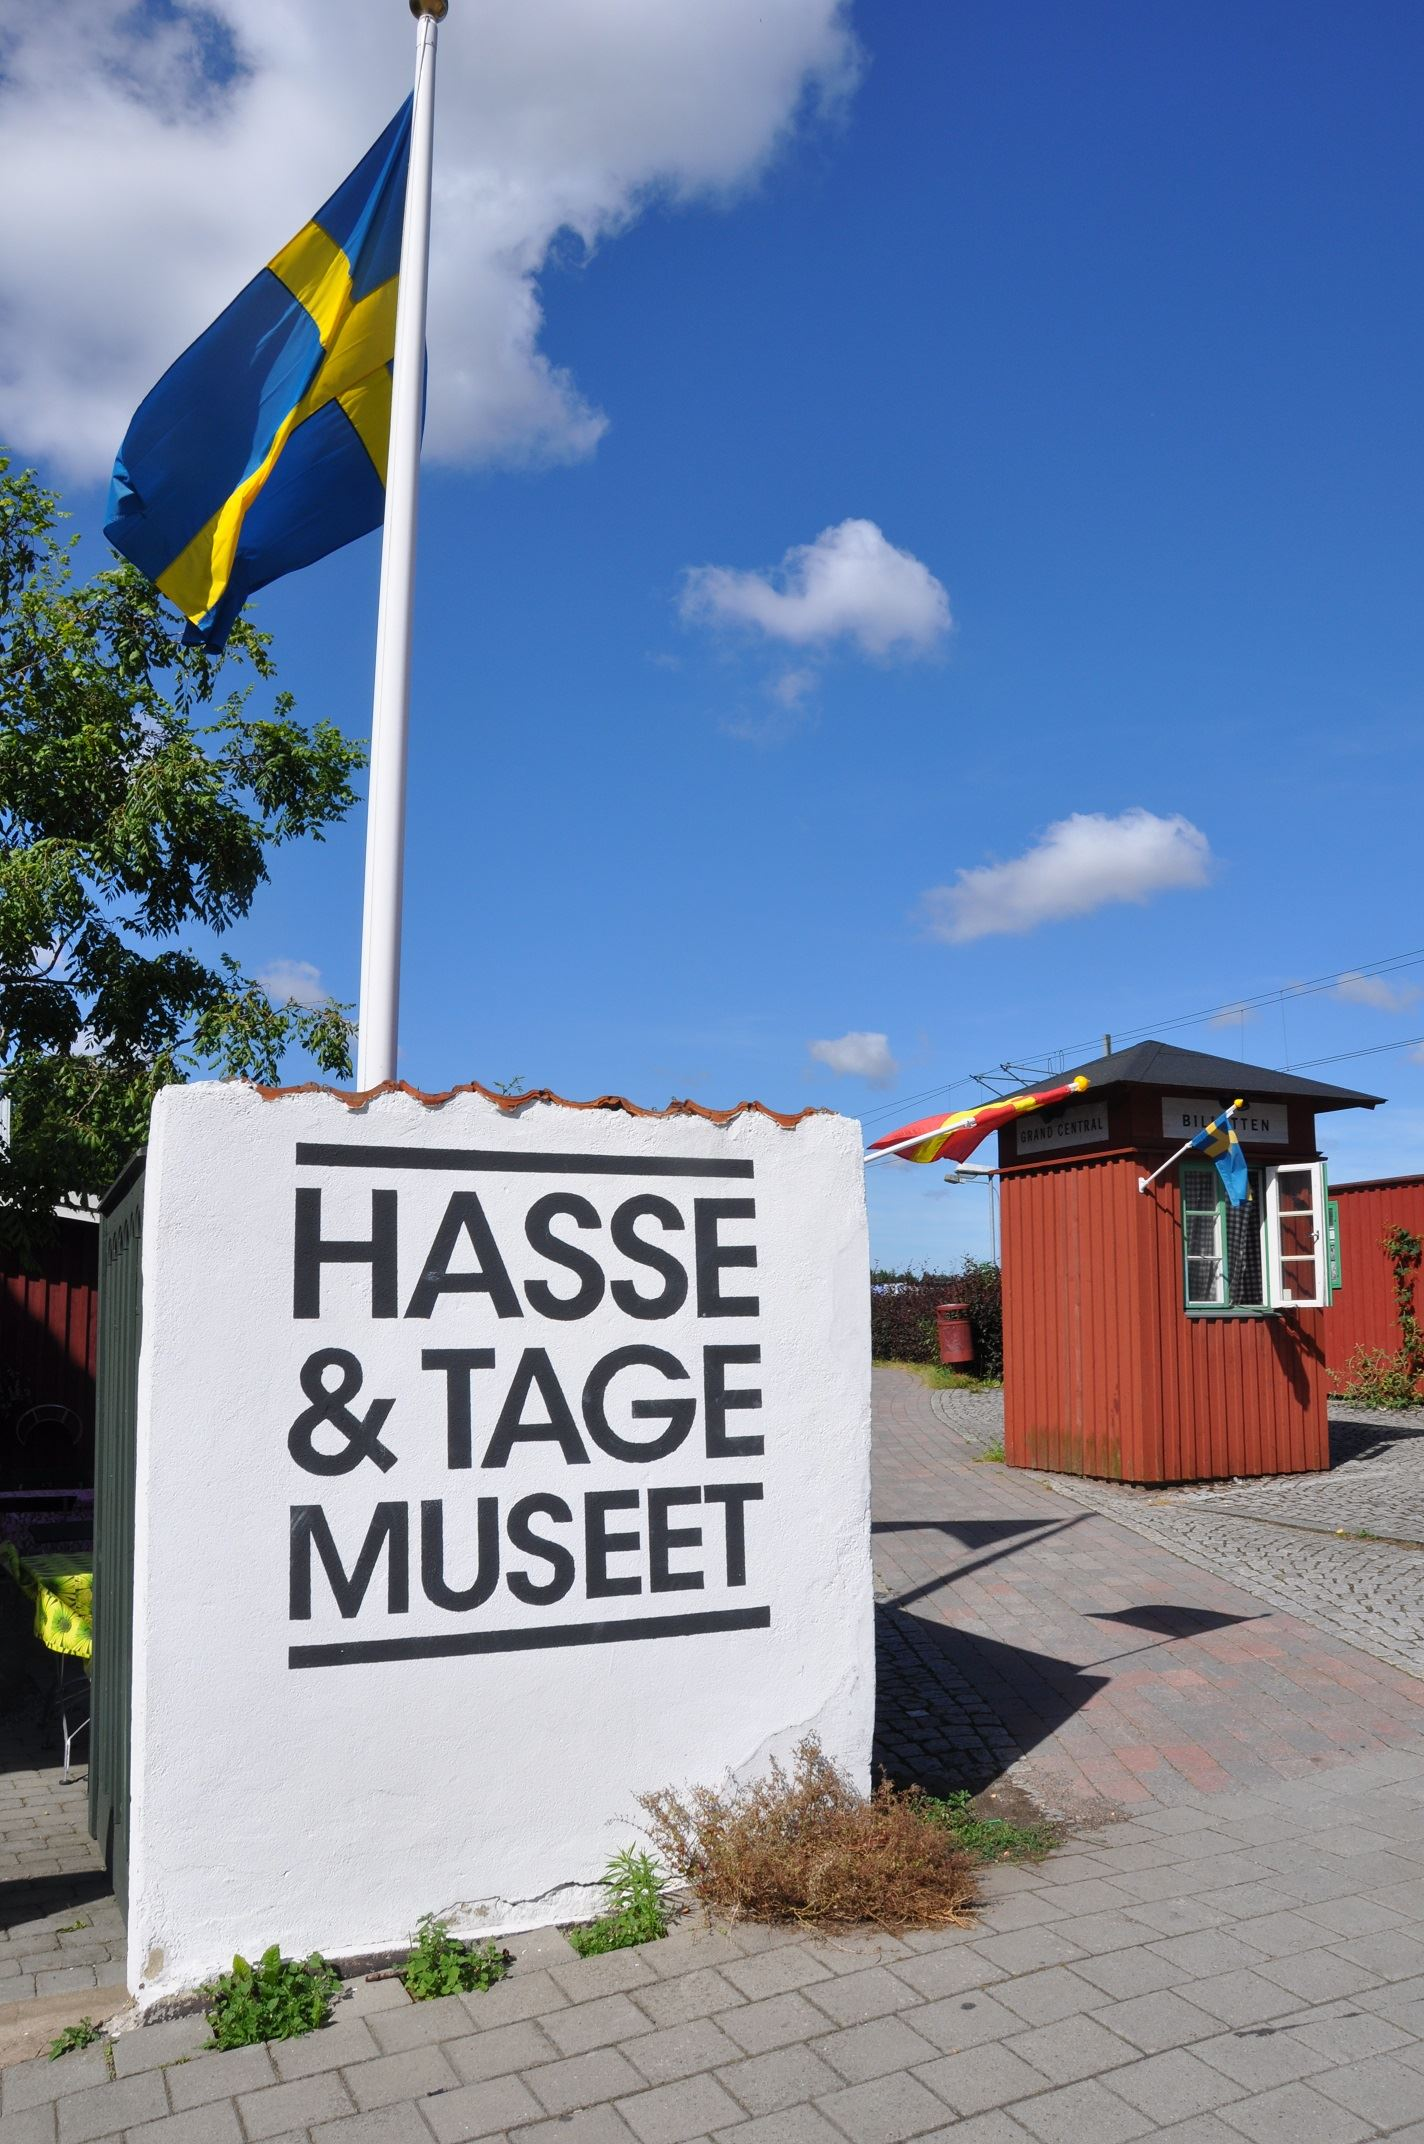 Foto: Elin Andersson, Hasse & Tage-Museum - Hasse & Tagemuséet